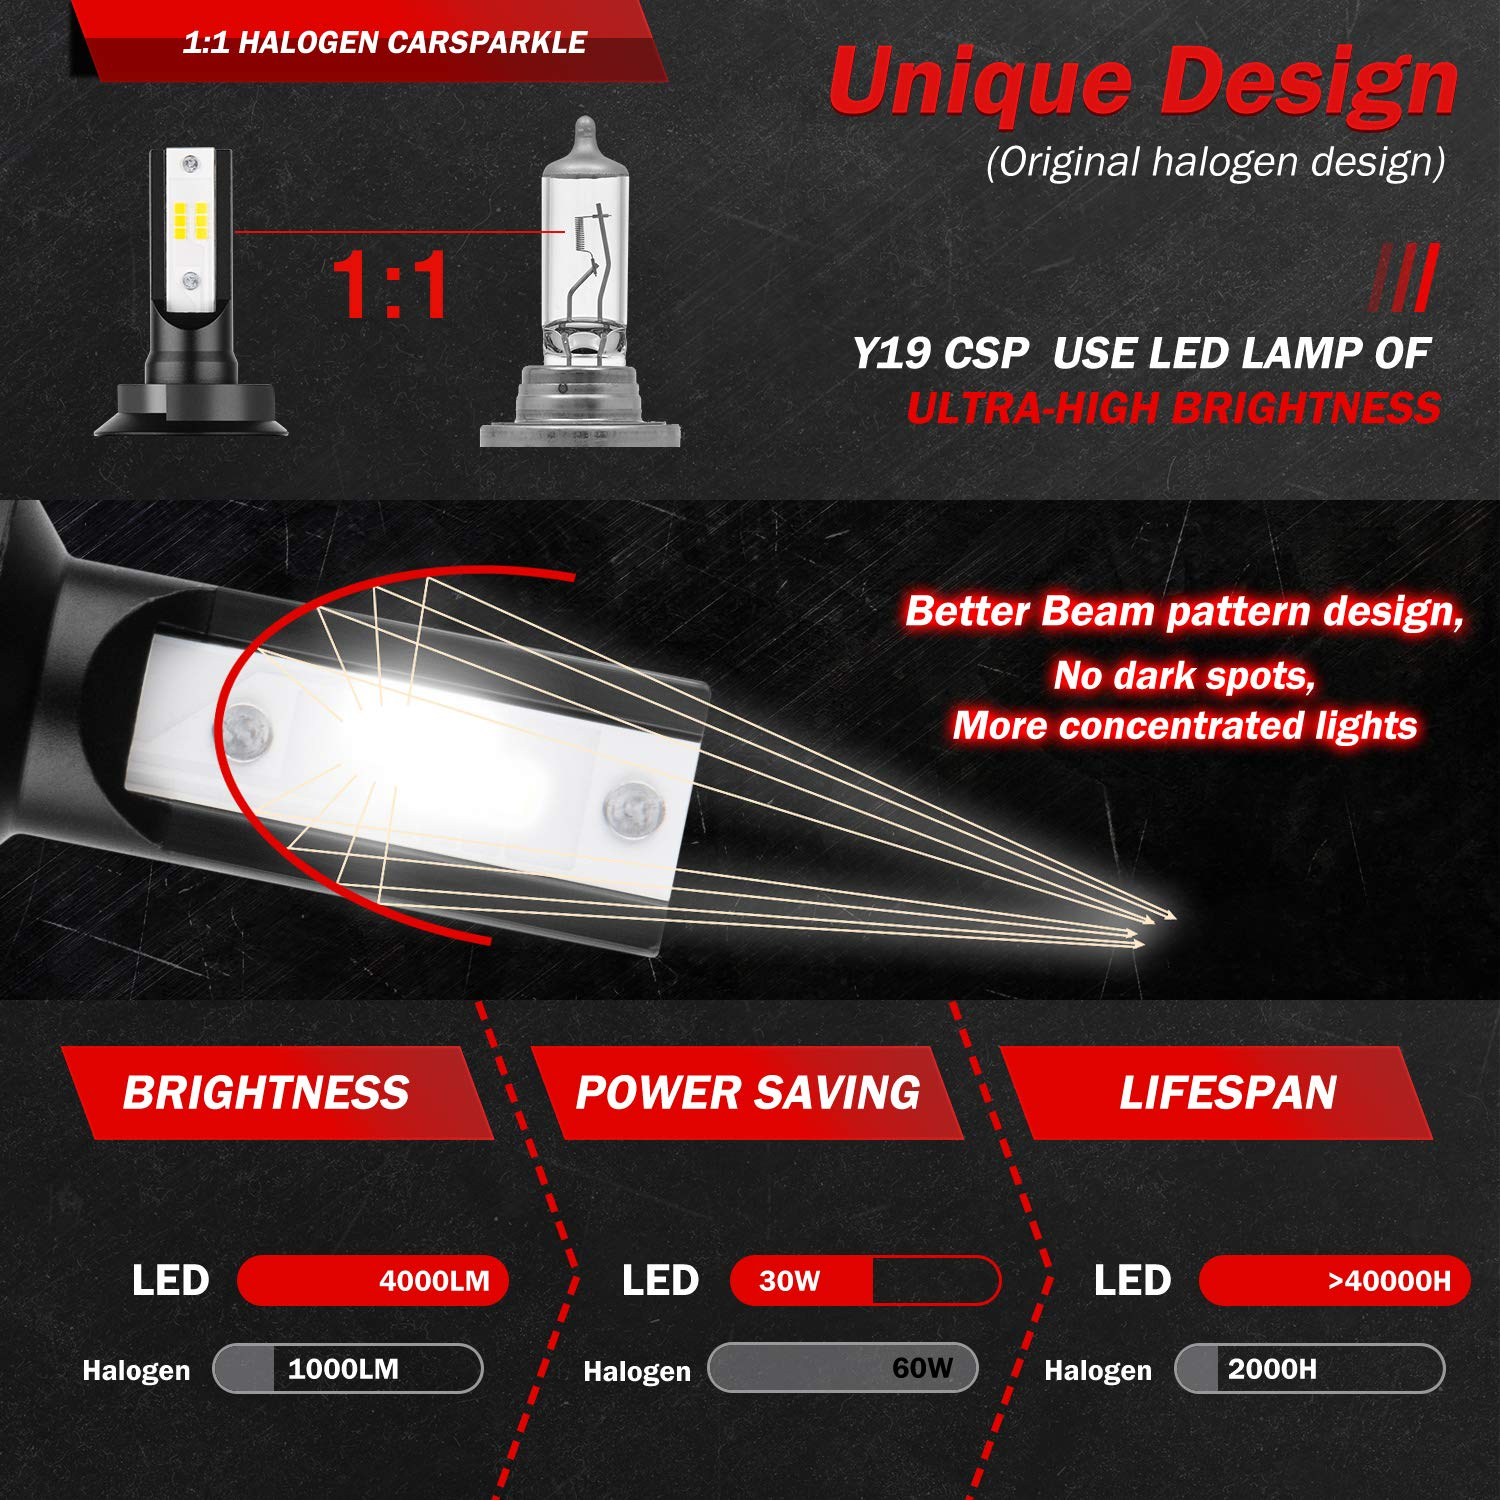 9007 LED Headlight Bulb MINI Size 9007//HB5 led Headlight Bulbs Conversion Kit CARSPARKLE Q1 SERIES 12 Pics CSP Chips with Cooling Fan High//Low Beam 12000LM 6000K Xenon White